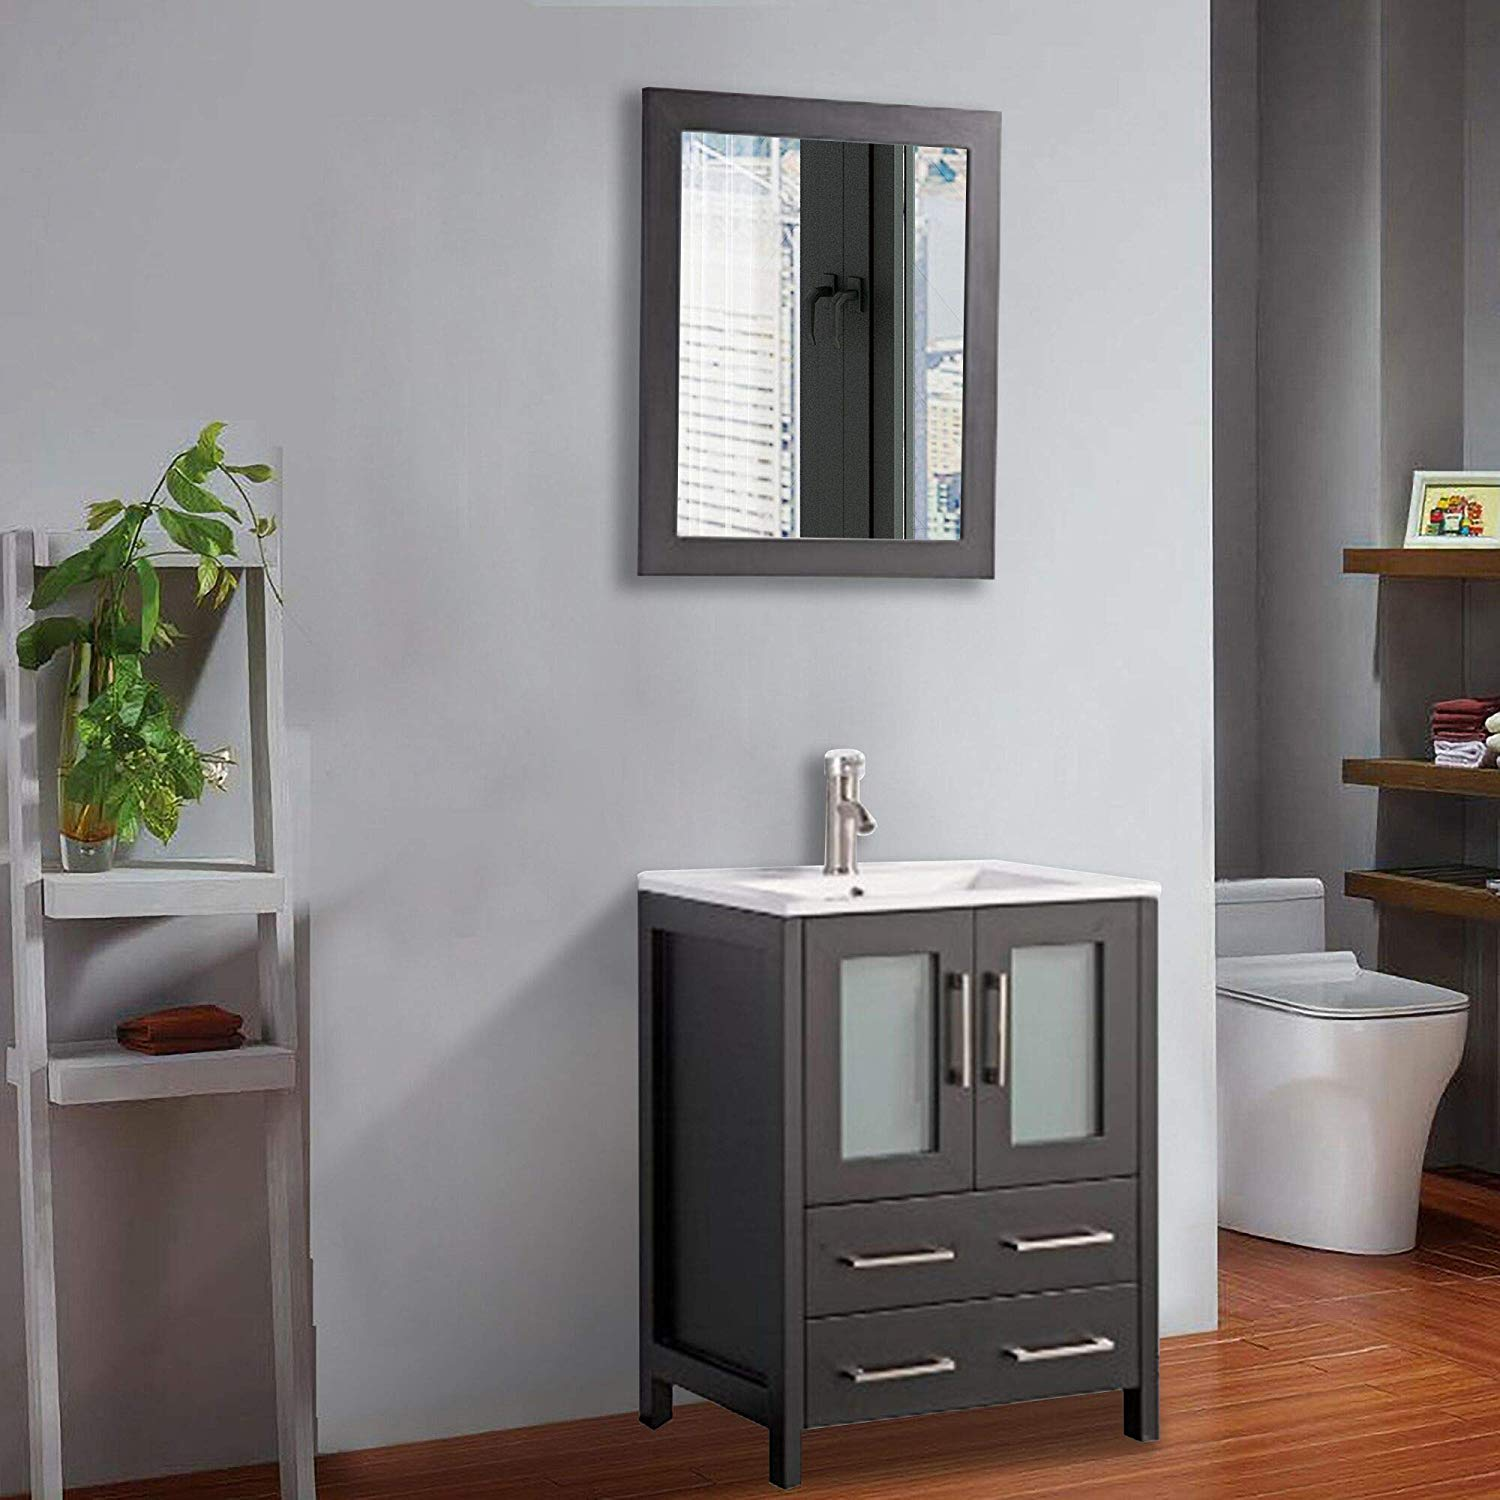 Vanity Art 24 Inch Single Sink Bathroom Vanity Set Modern Small Bathroom Storage Cabinet Solid